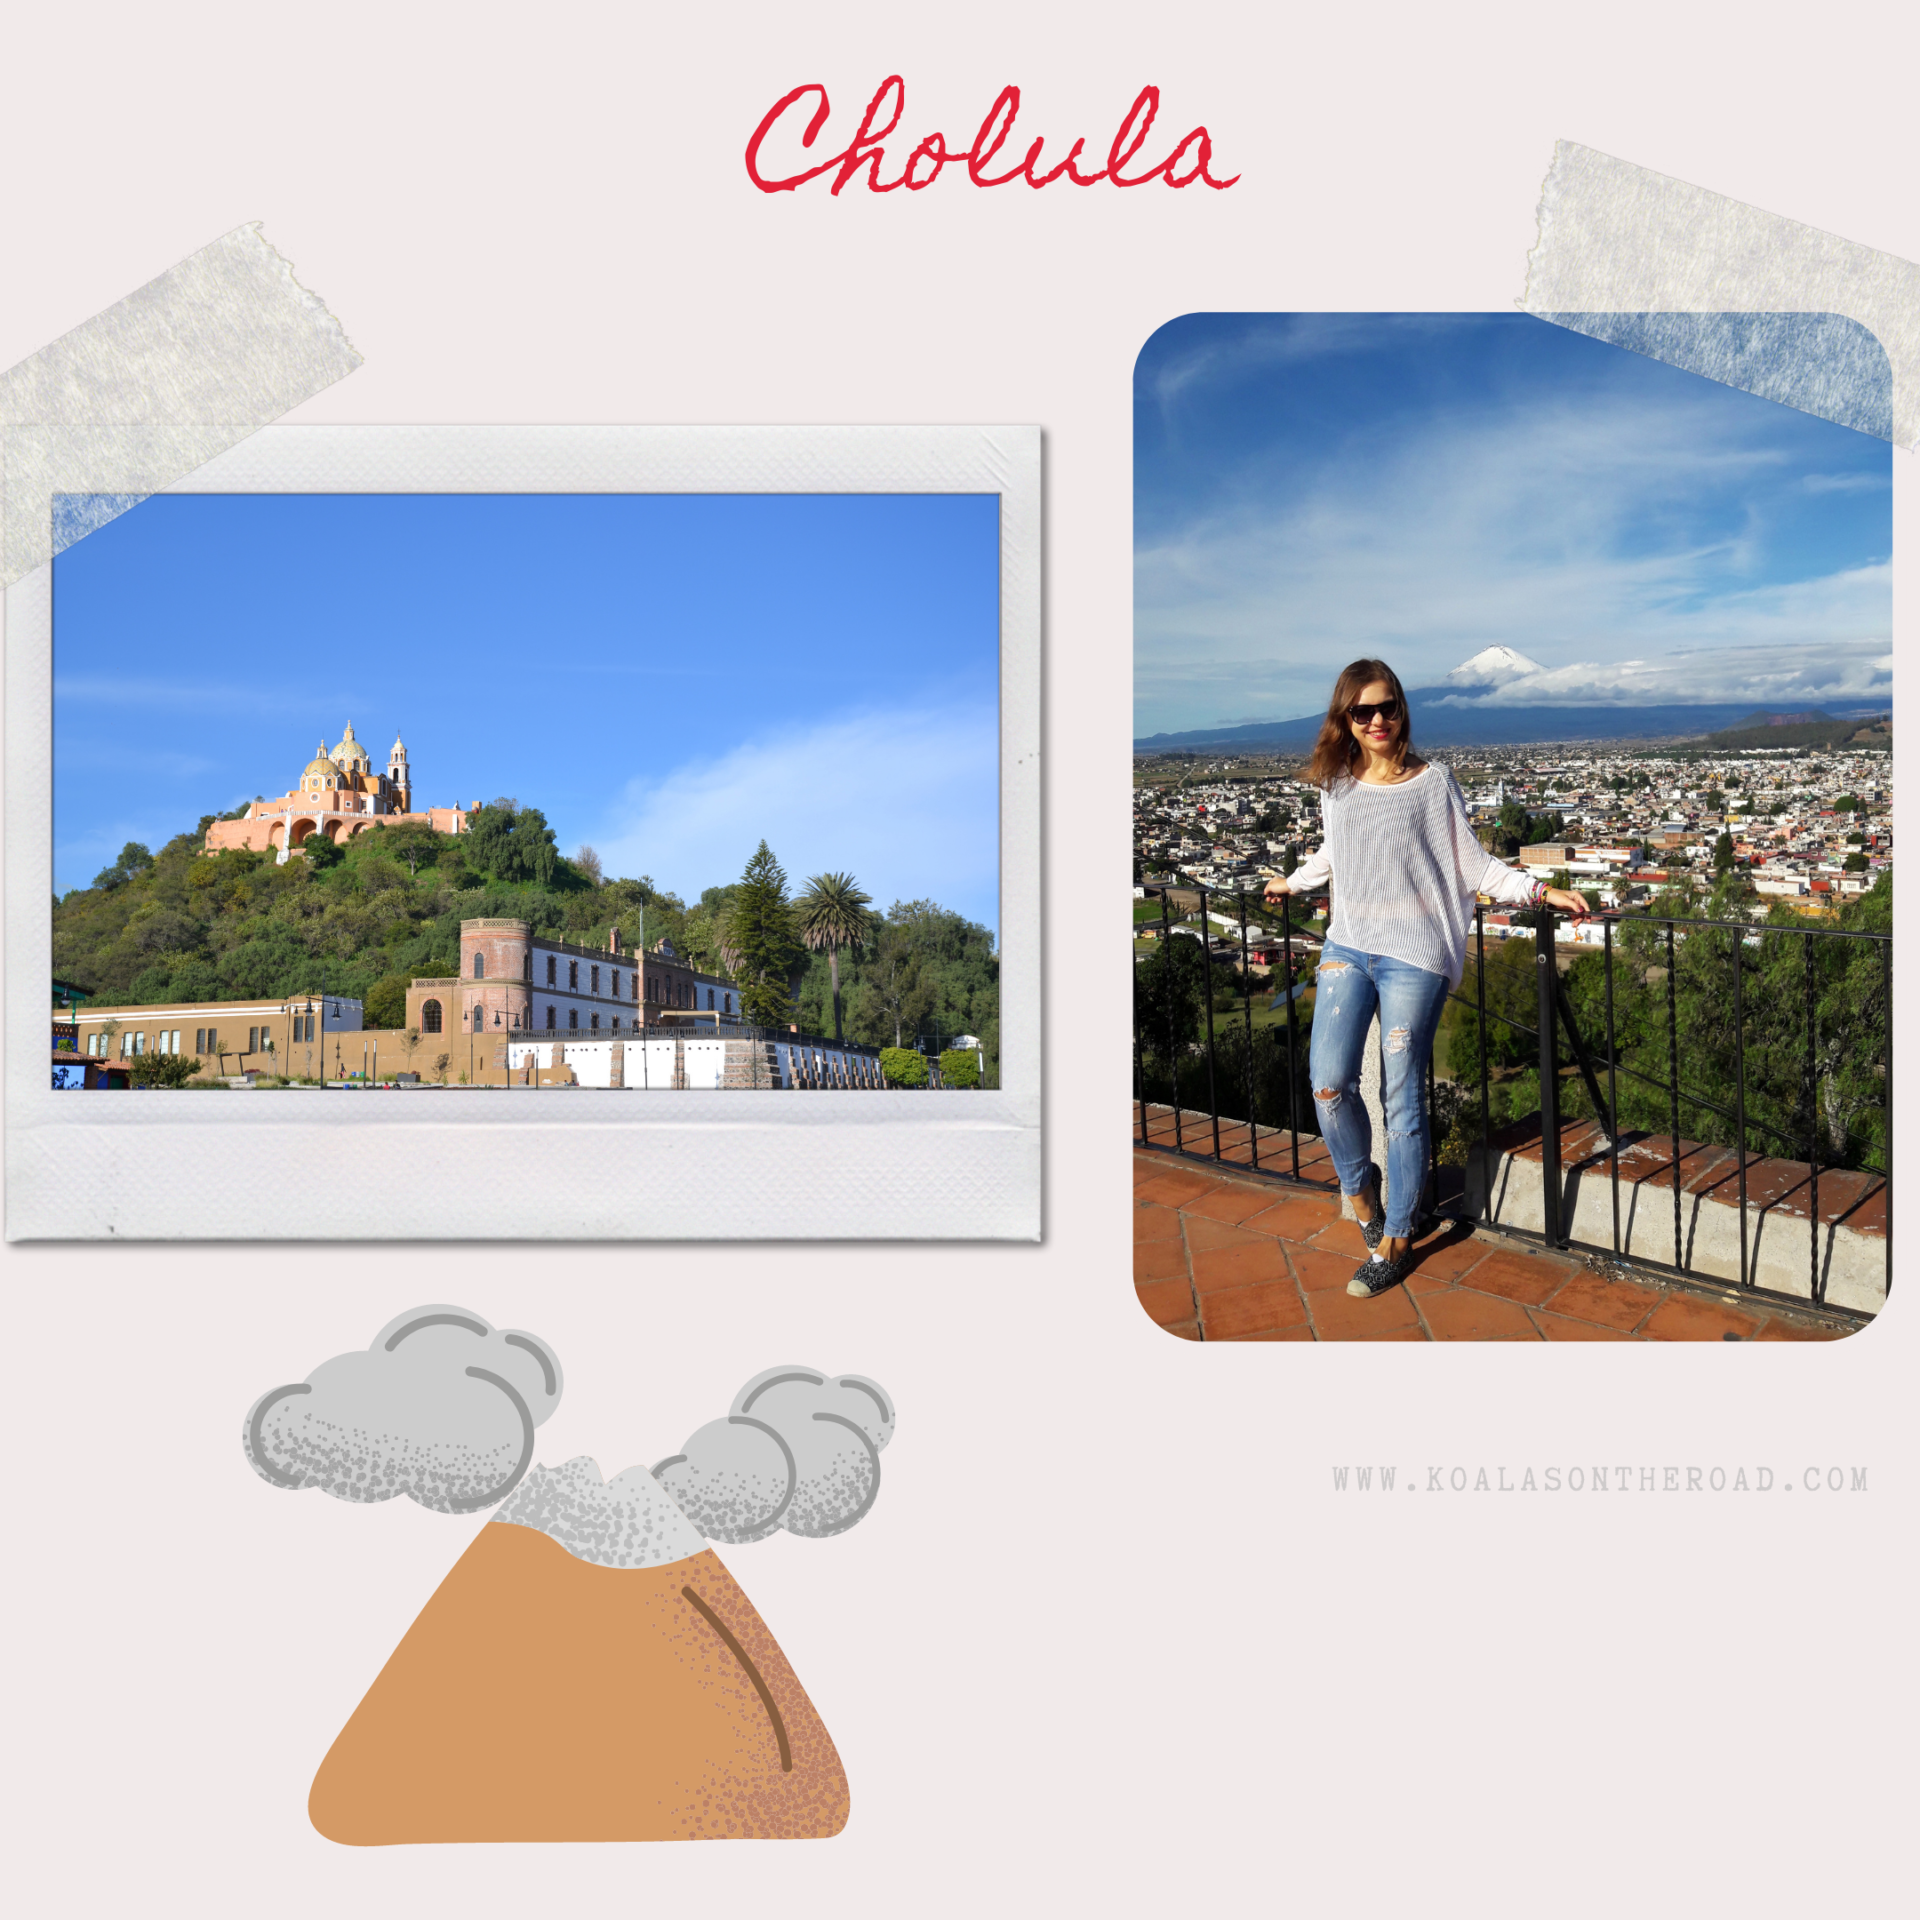 Discovering Mexico - what to visit in Puebla, Morelos and Guerrero states - koalas on the road-Cholula